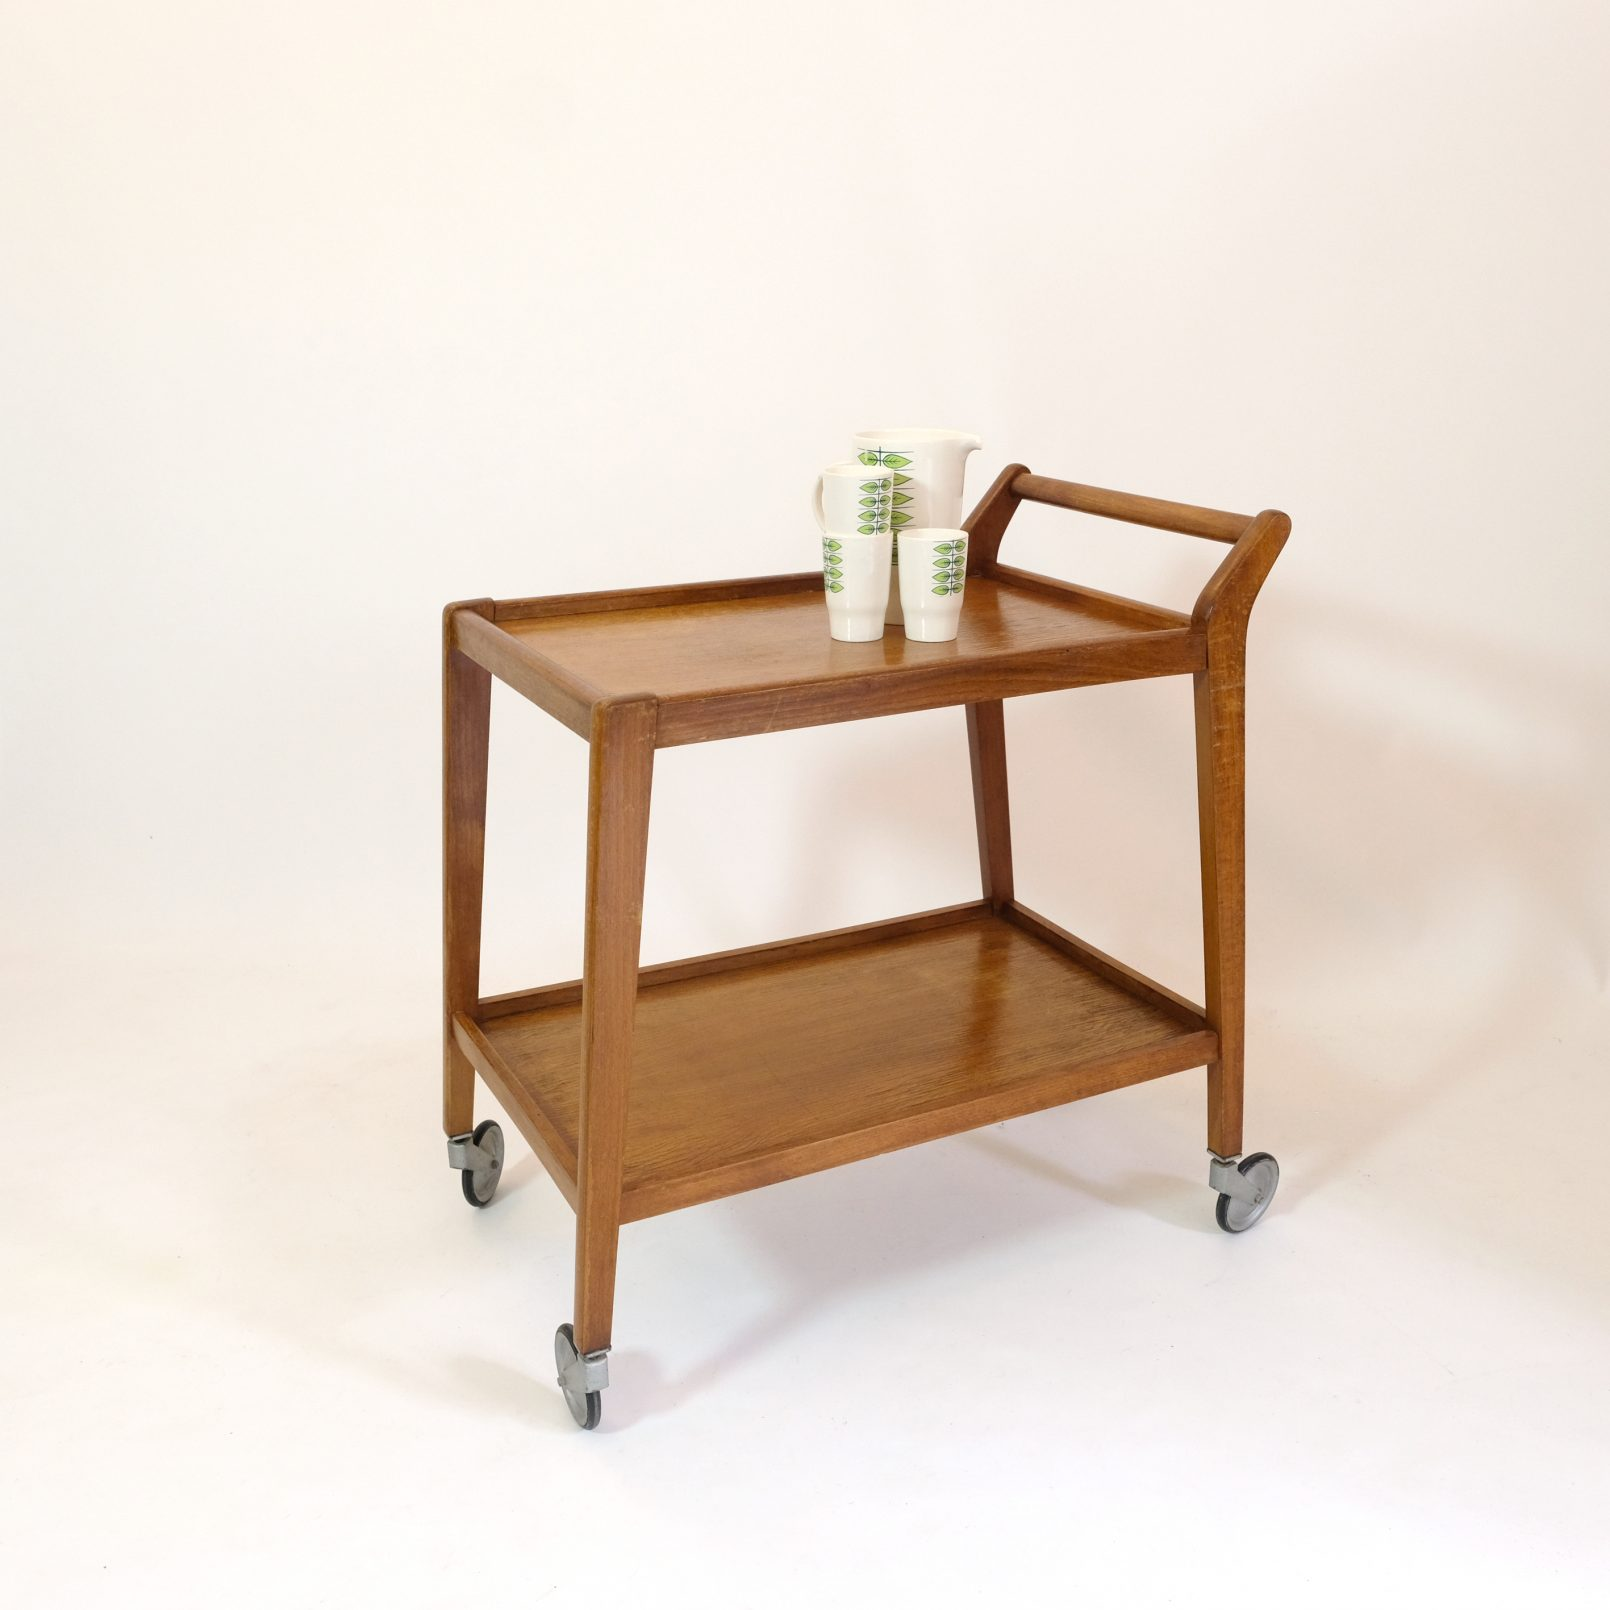 Wooden French serving trolley from the fifties.